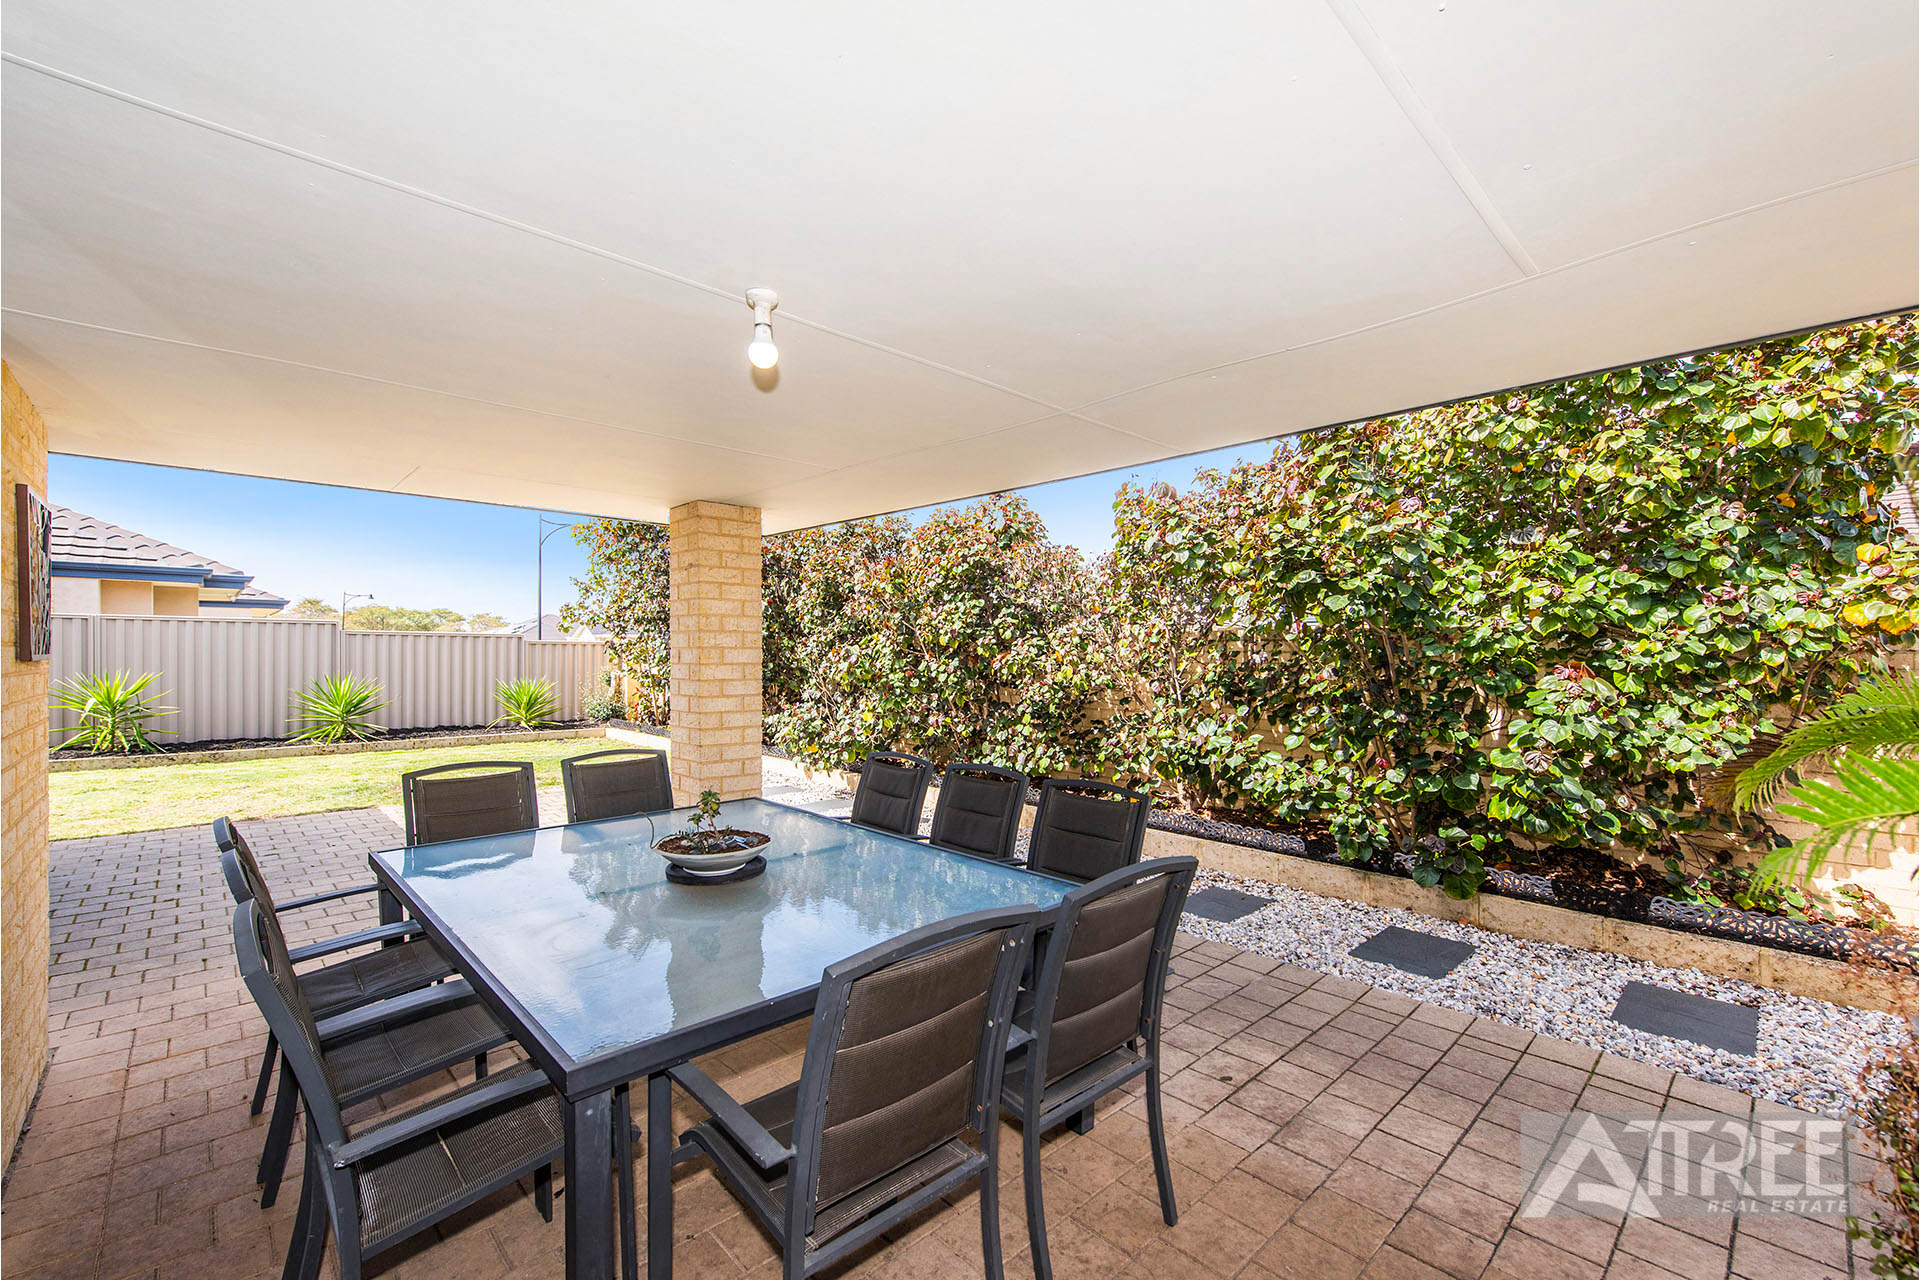 Property for sale in HARRISDALE, 1 Binnia Mews : Attree Real Estate